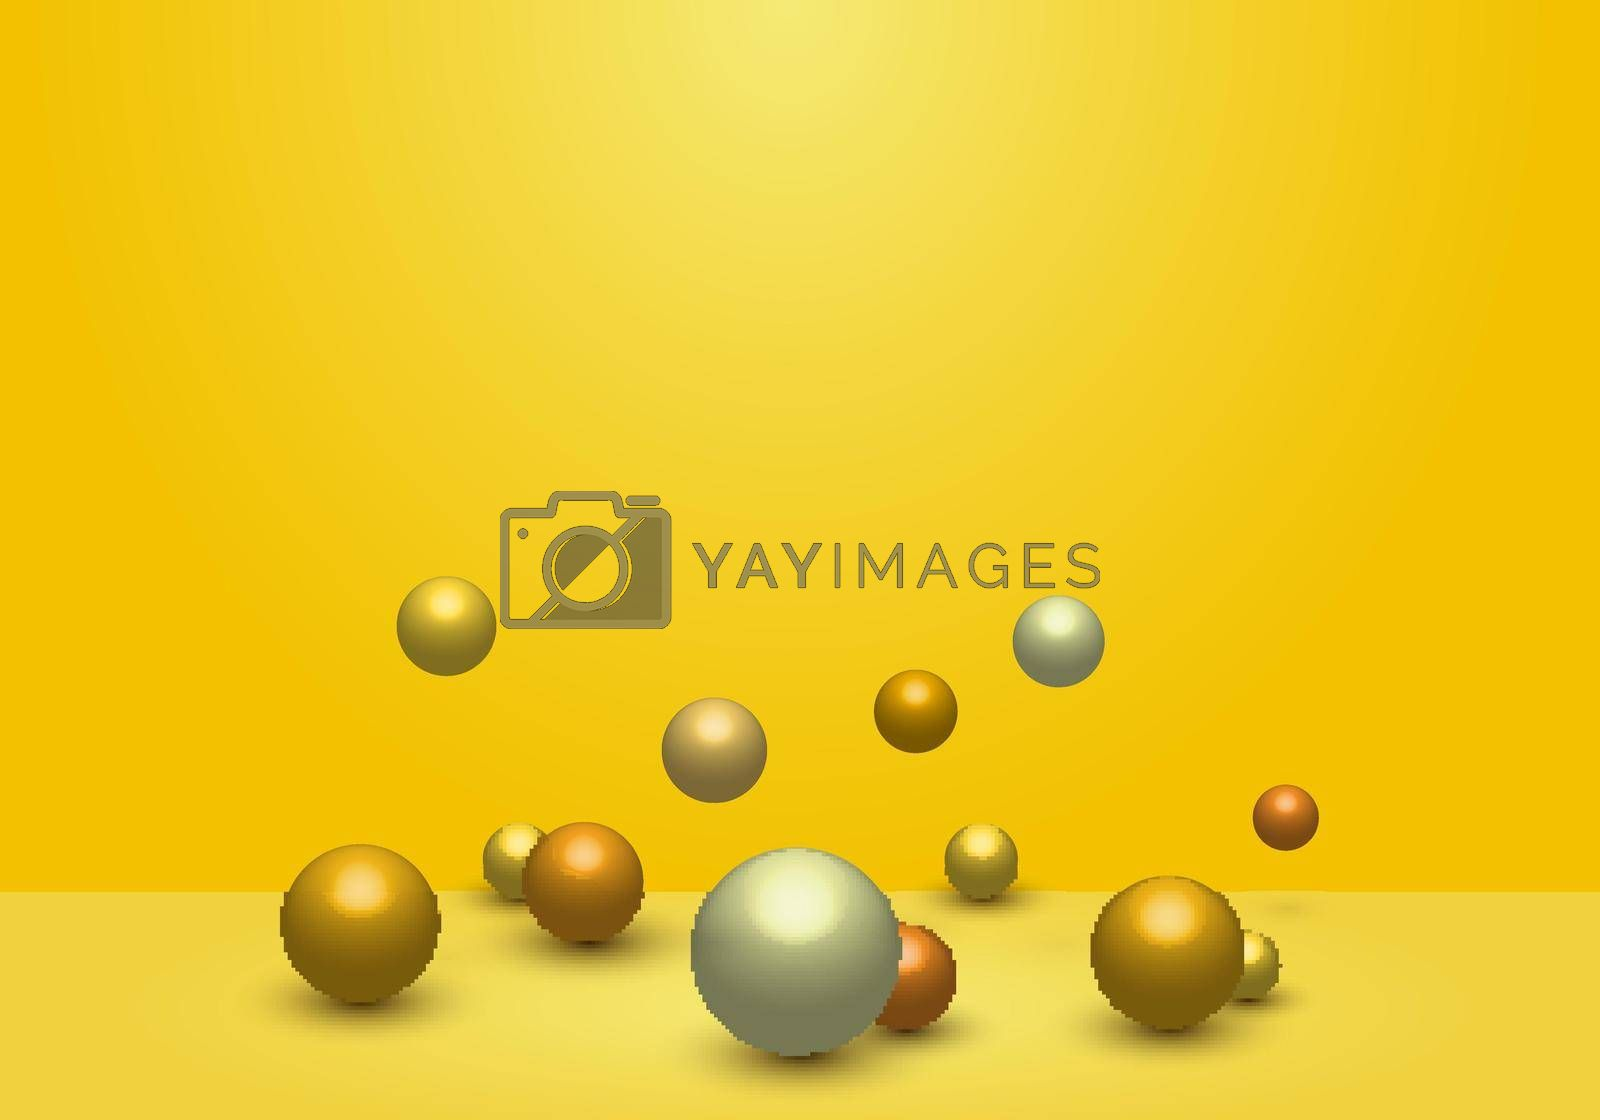 Royalty free image of 3D dynamic 3d spheres glossy balls on yellow studio room background by phochi